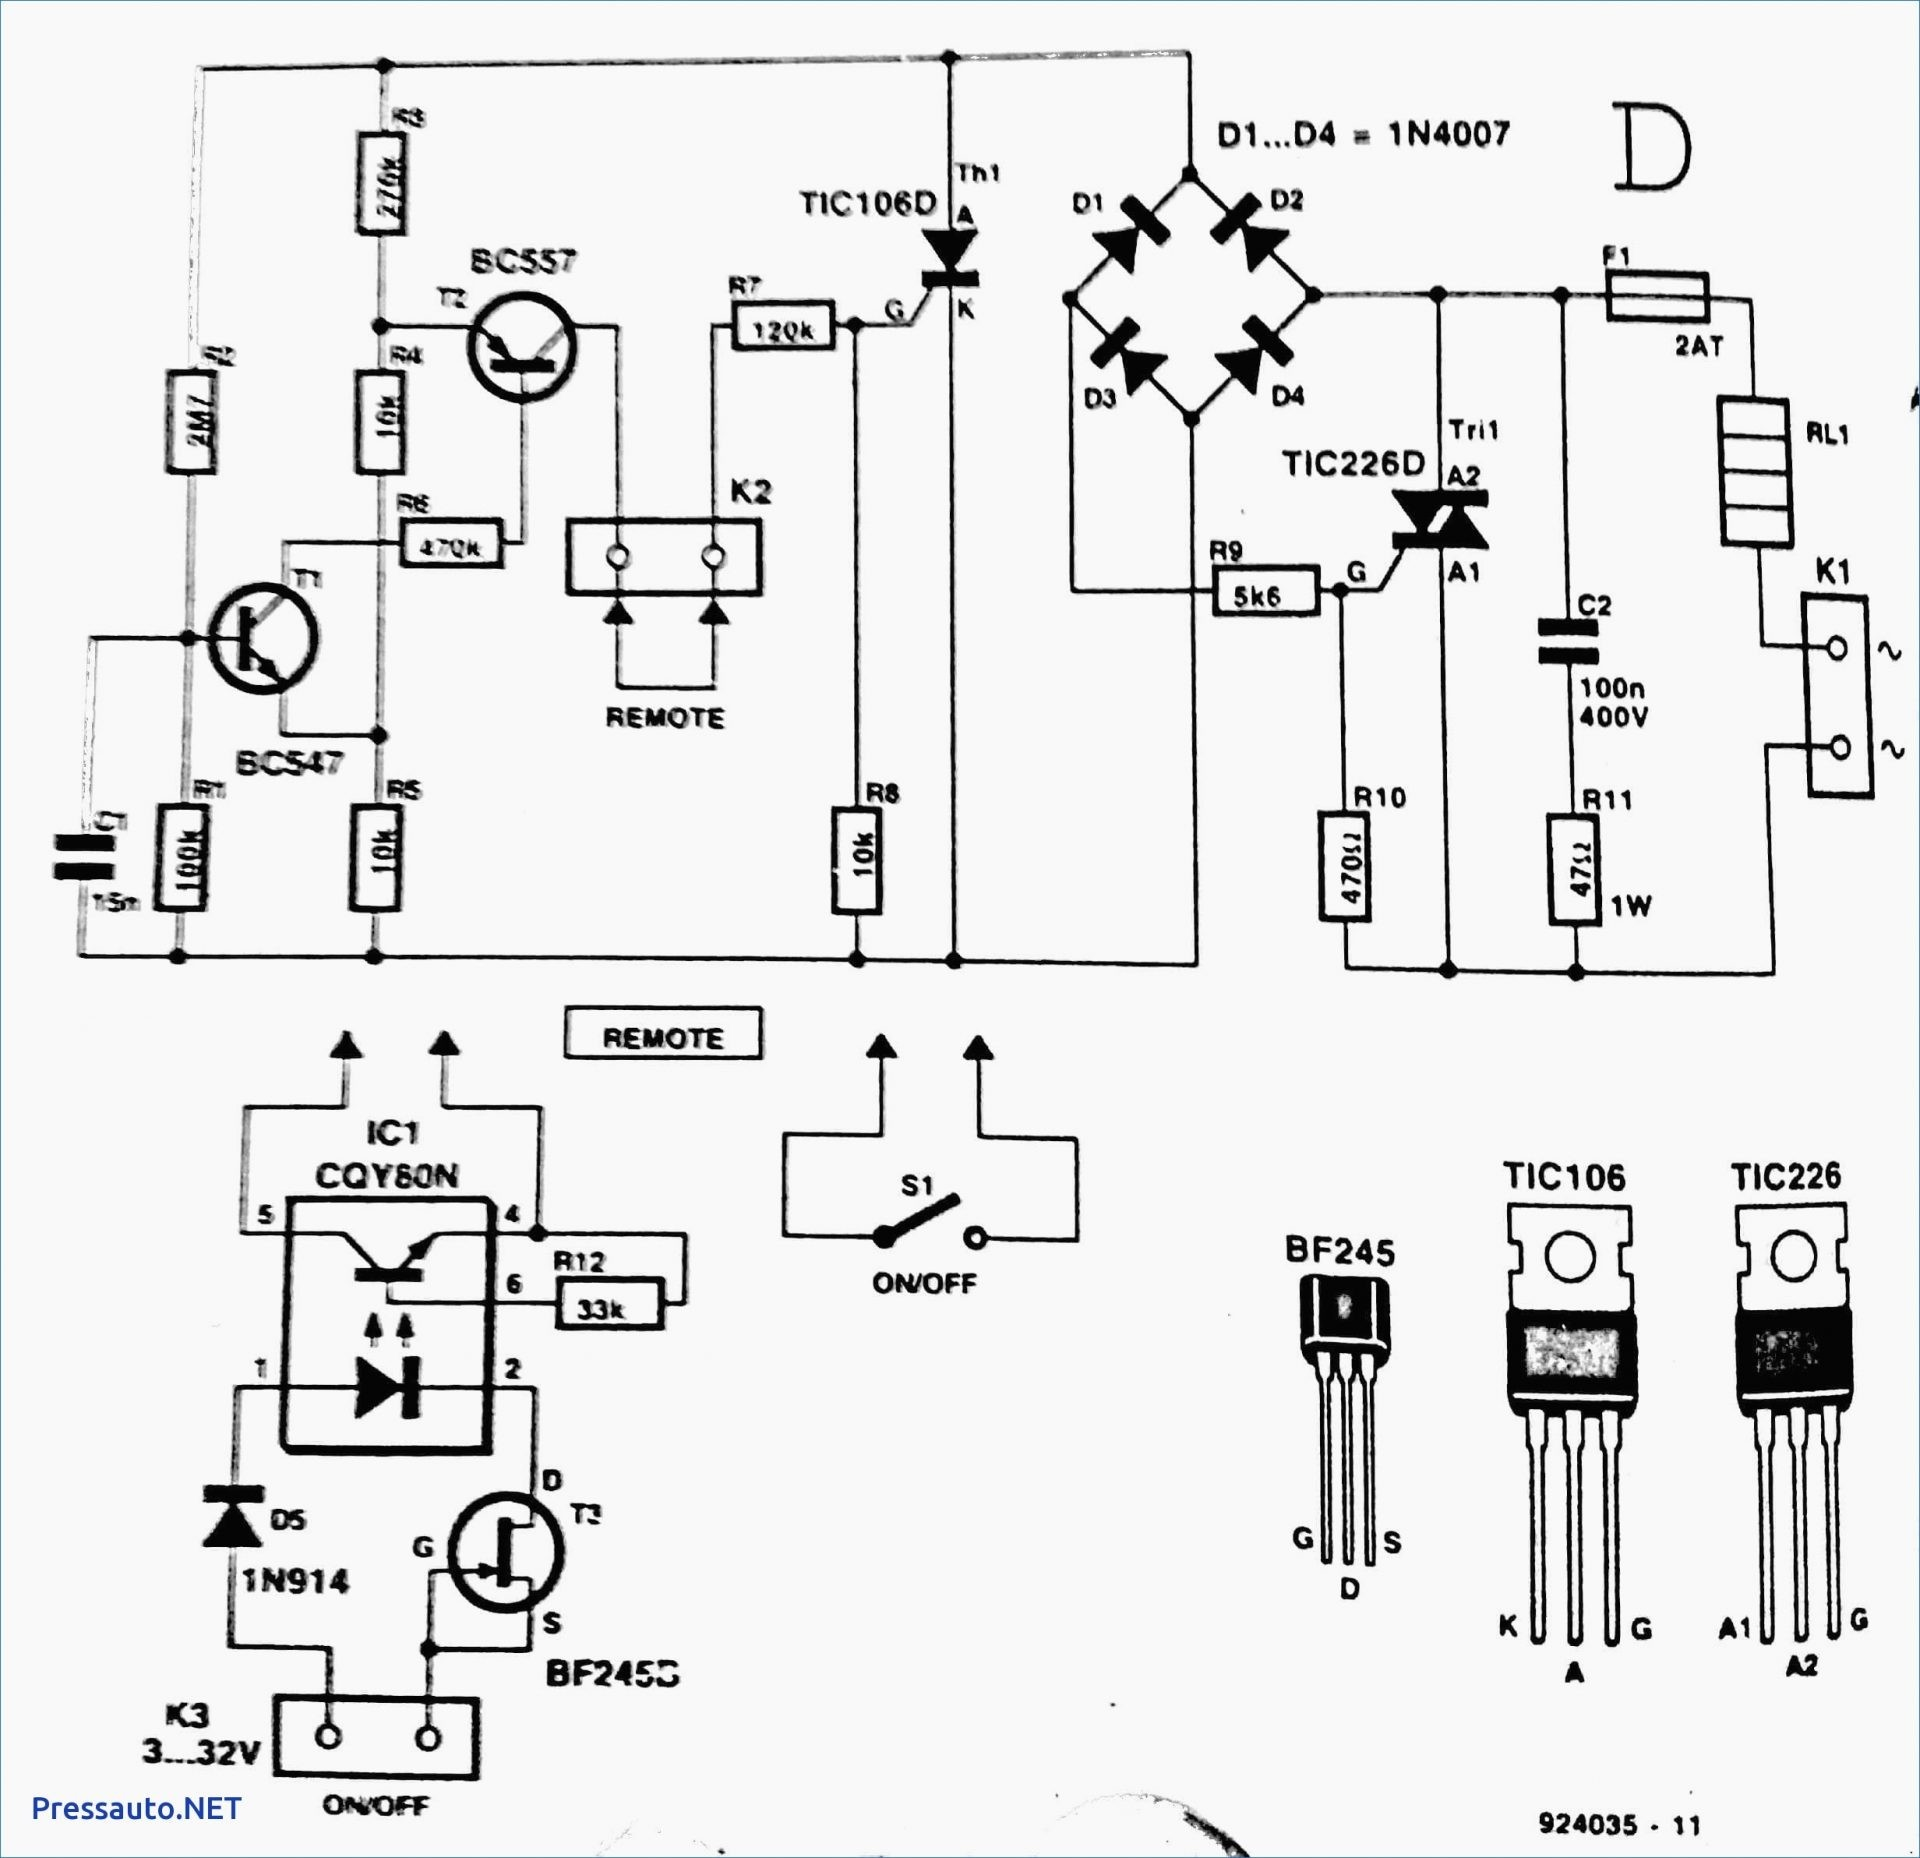 Car Inverter Wiring Diagram as well Kussmaul Auto Eject Wiring Diagram as well Dryer repair chapter 2 as well Clothes Dryer Plug Wiring Diagram as well Circuit Diagram Drawing Program. on 220 volt plug in timer